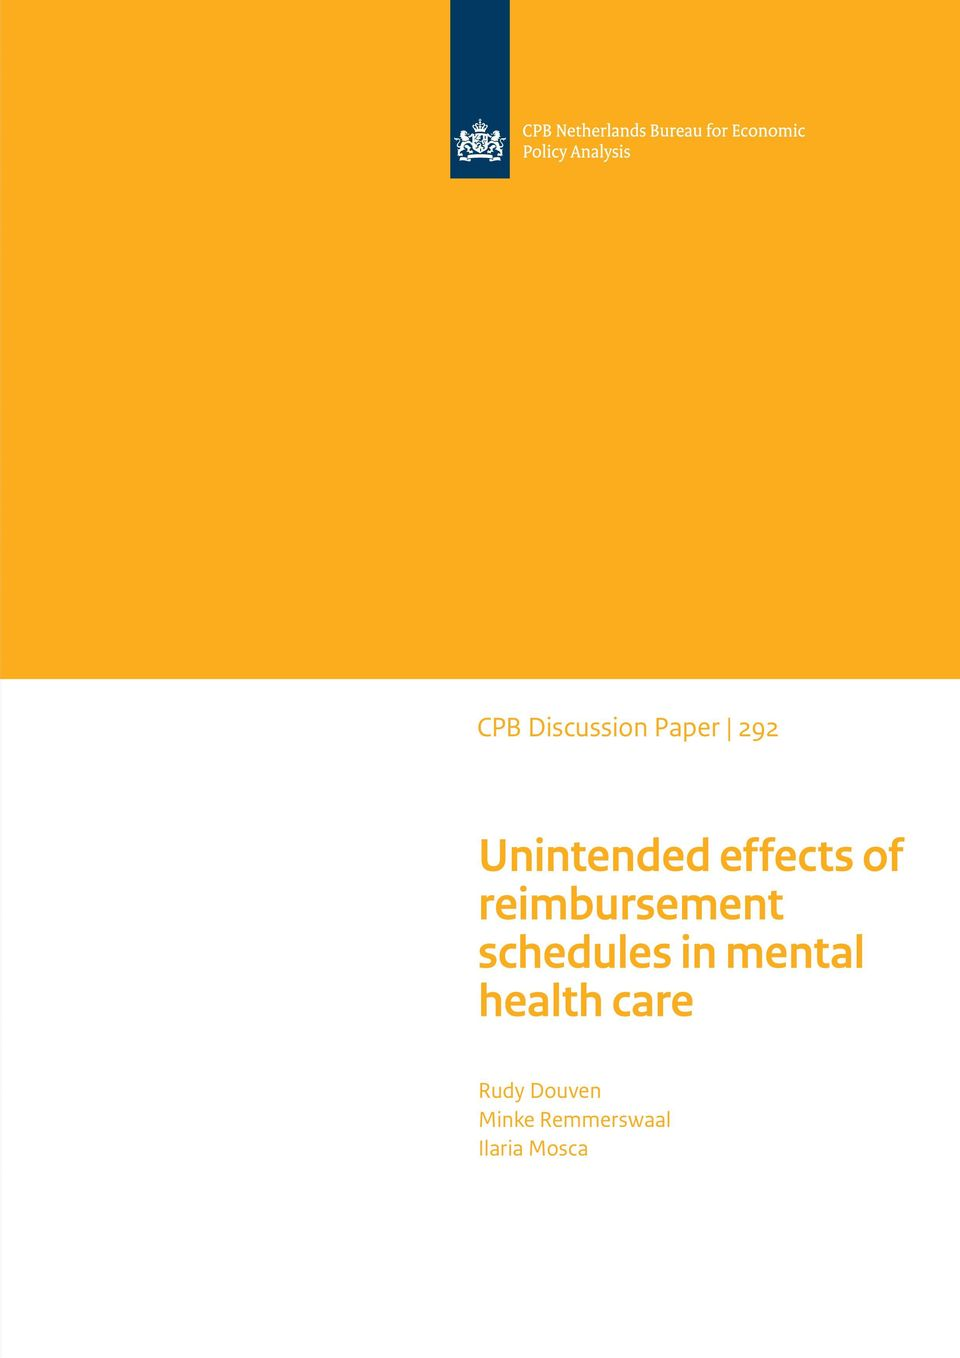 reimbursement schedules in mental